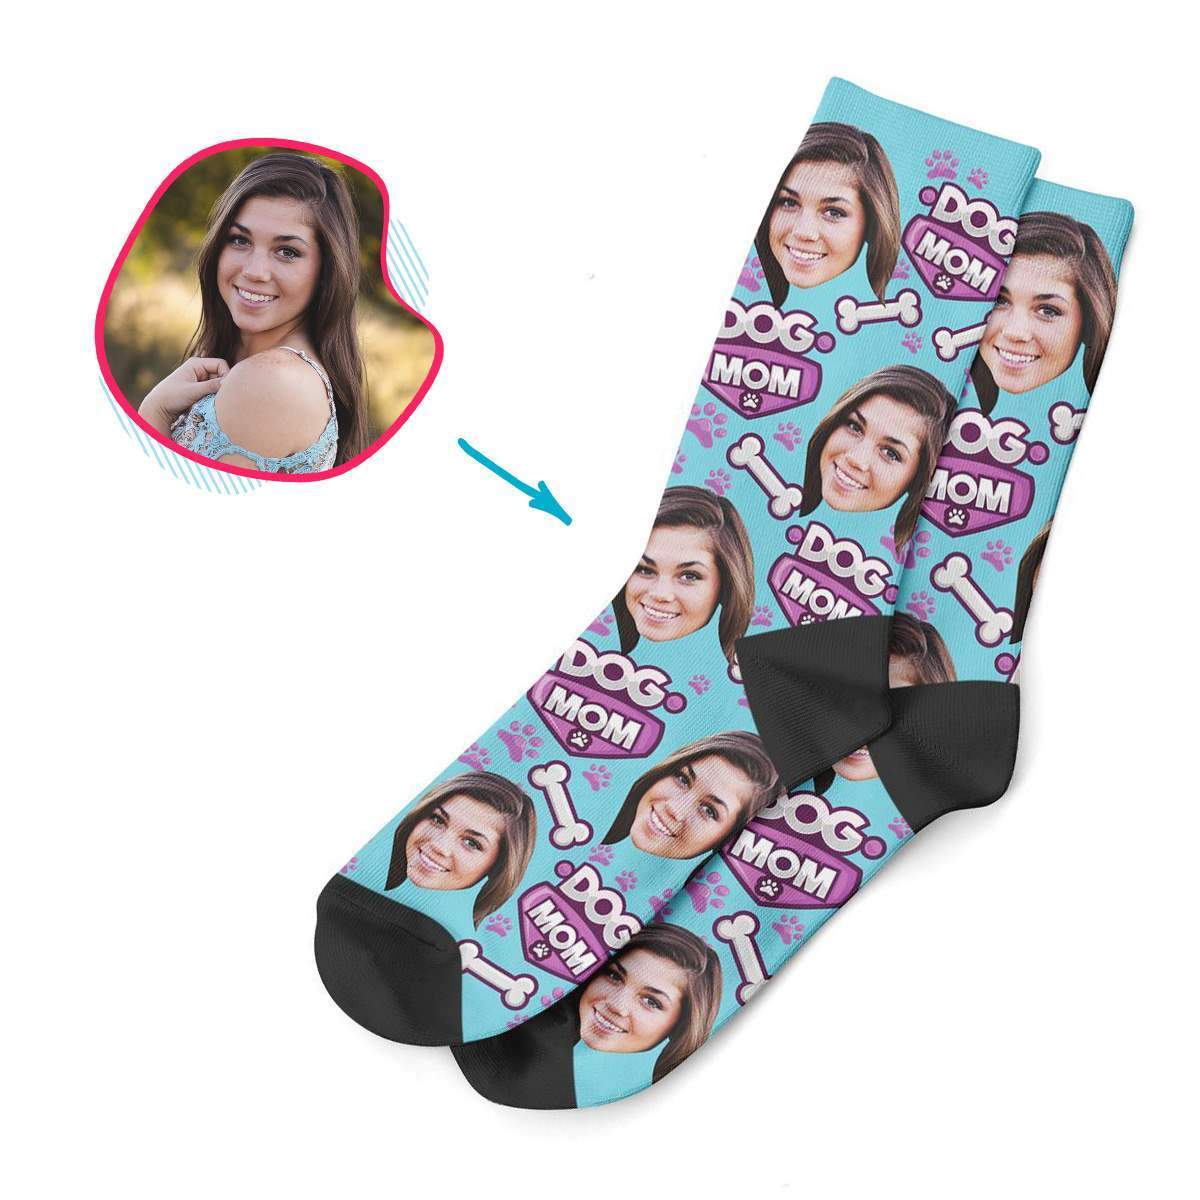 blue Dog Mom socks personalized with photo of face printed on them